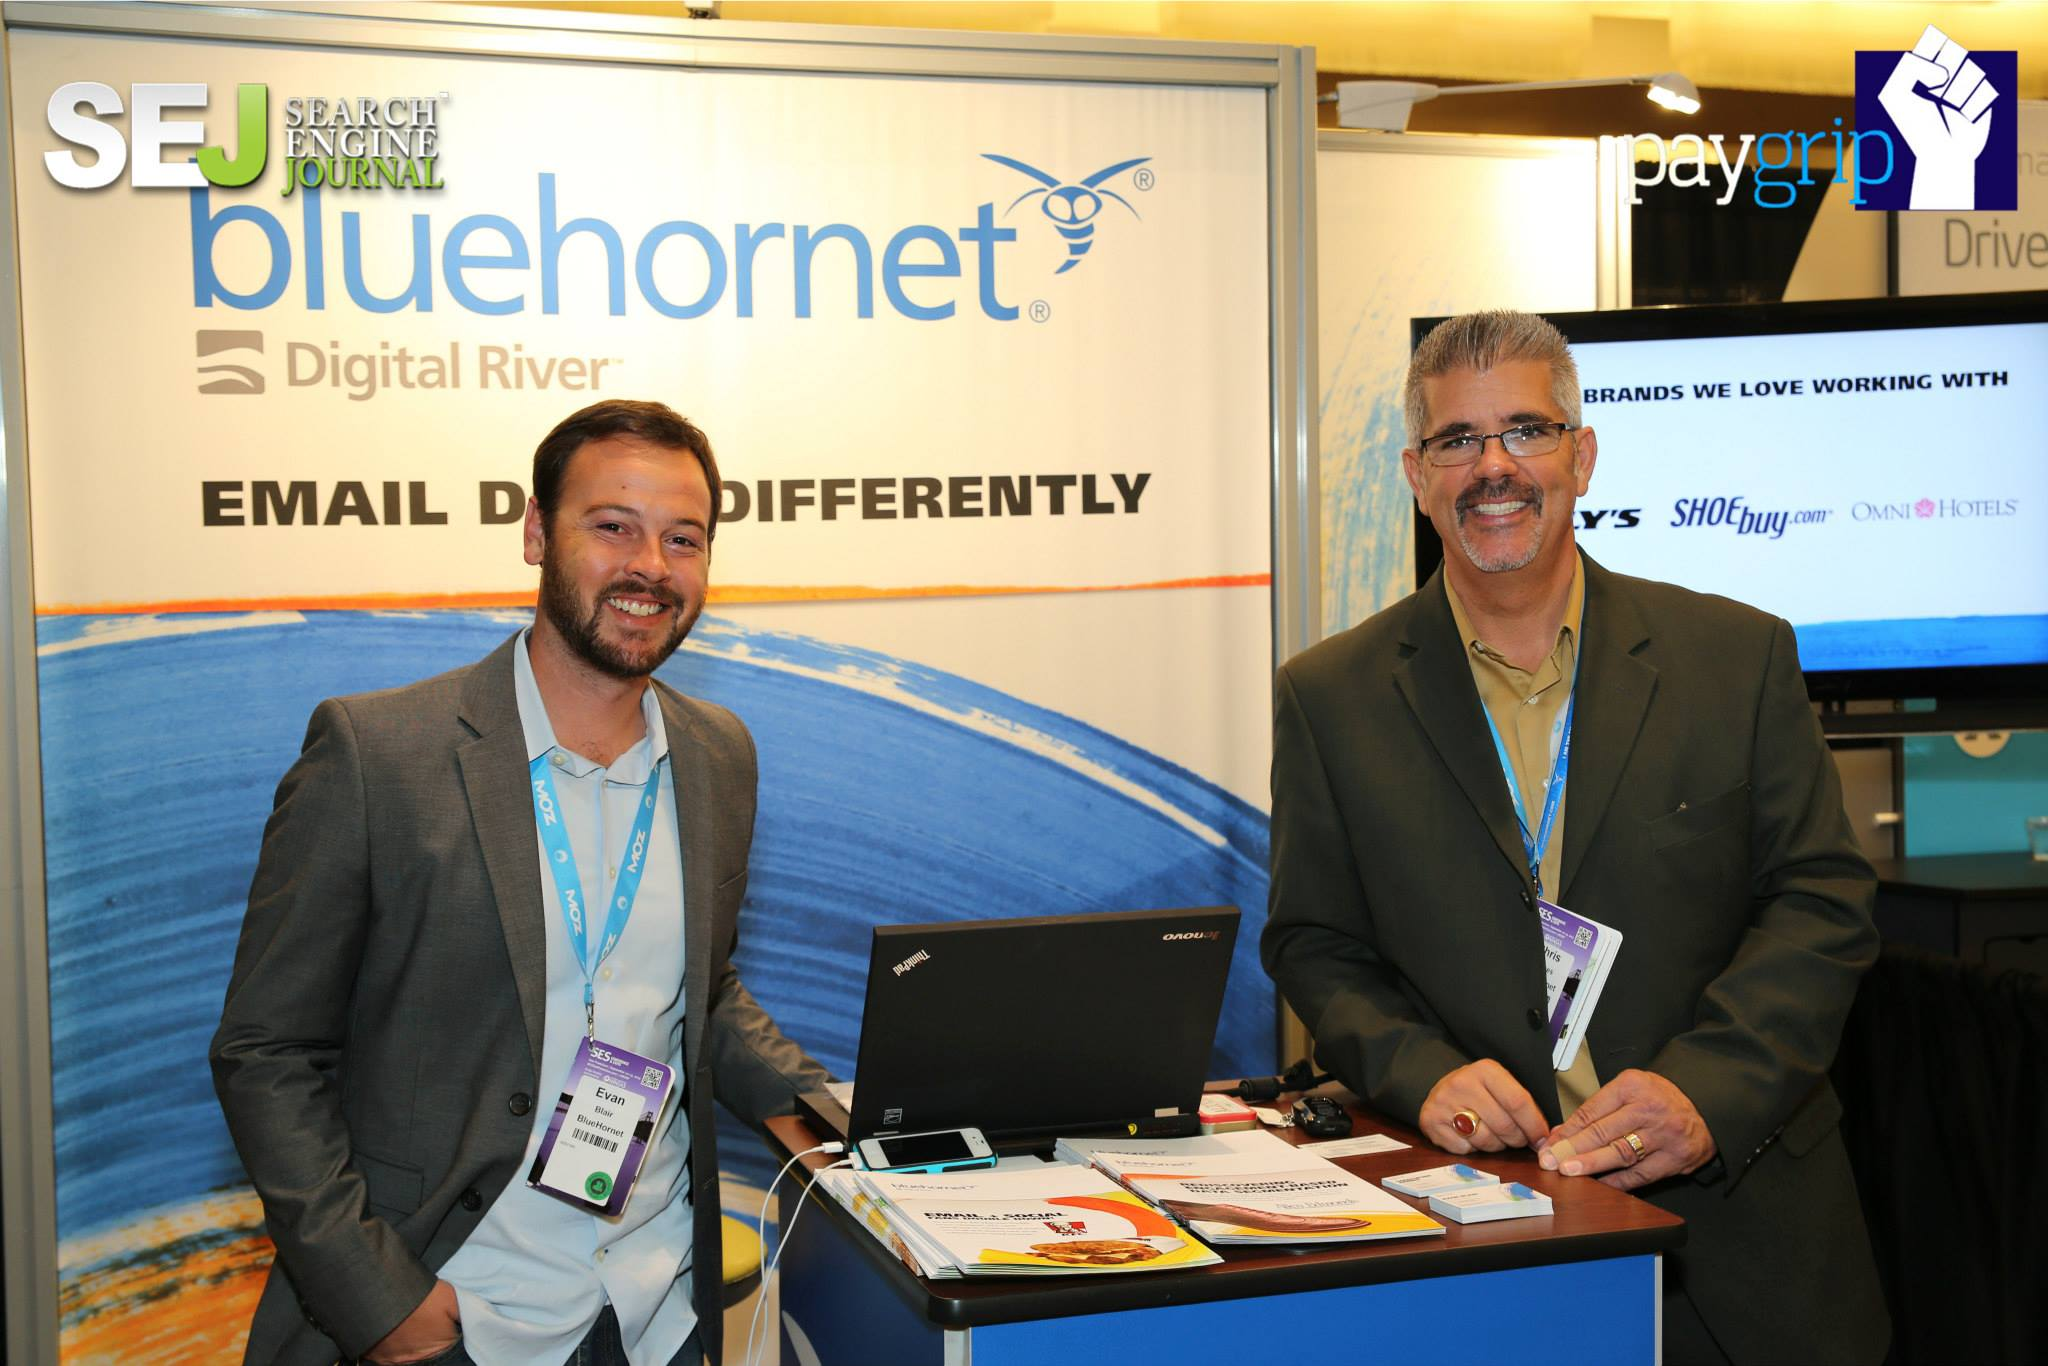 Bluehornet booth